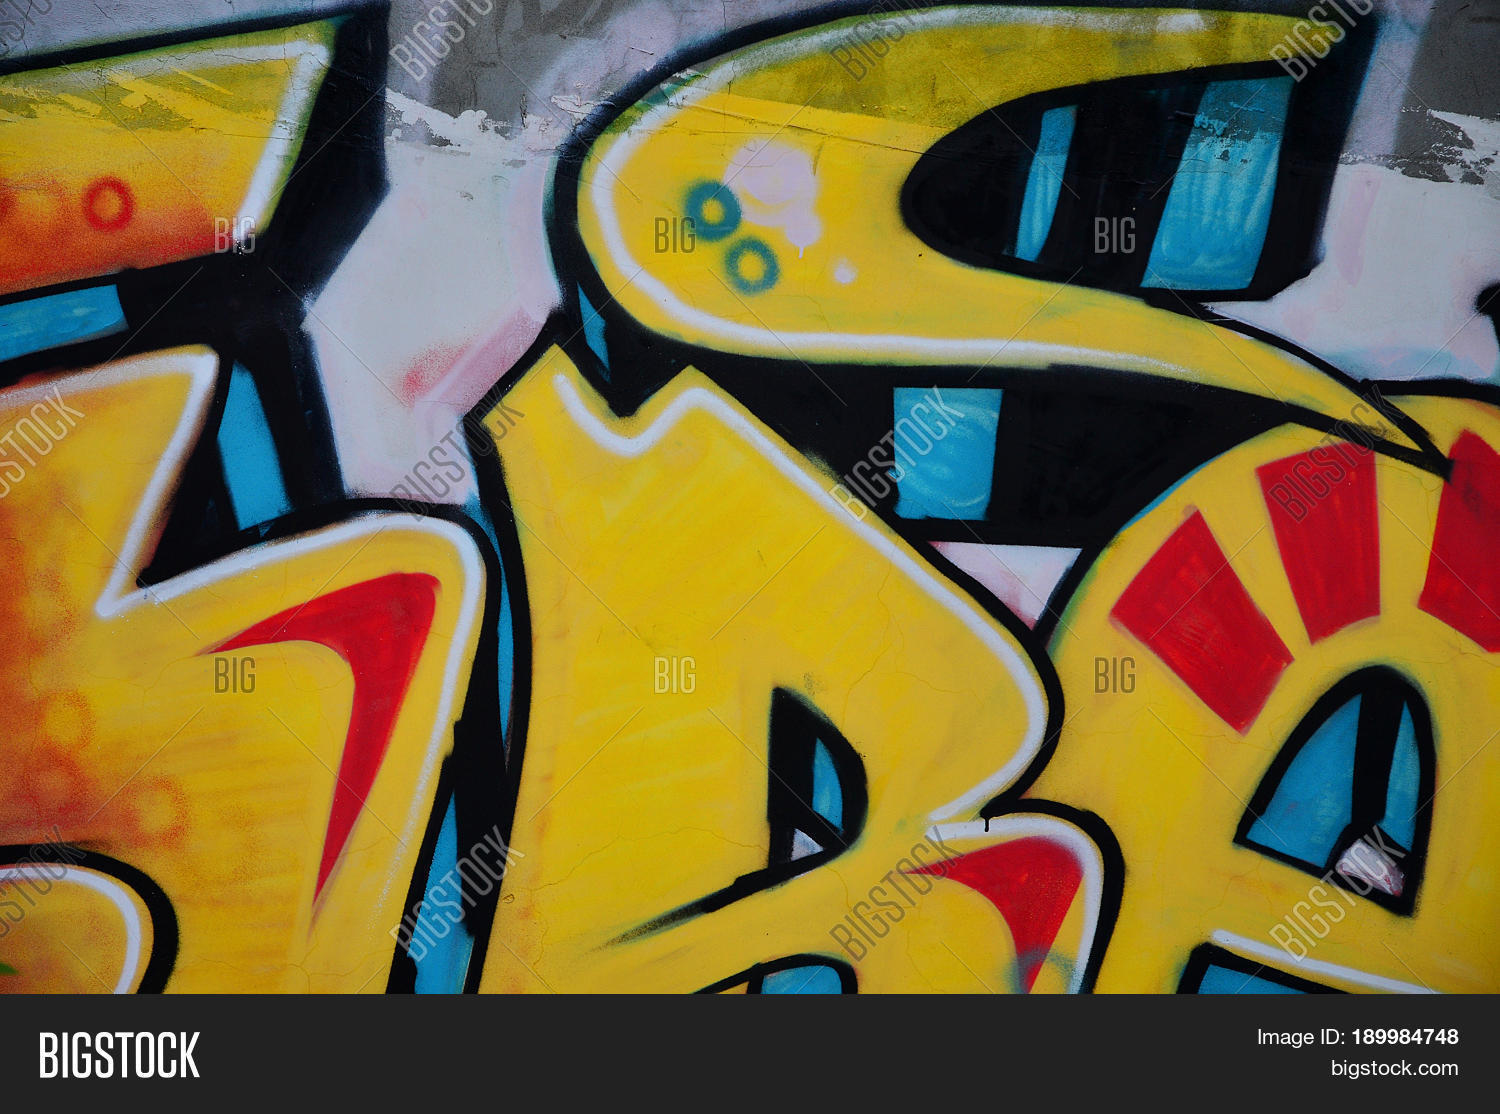 Art Under Ground. Image & Photo (Free Trial) | Bigstock